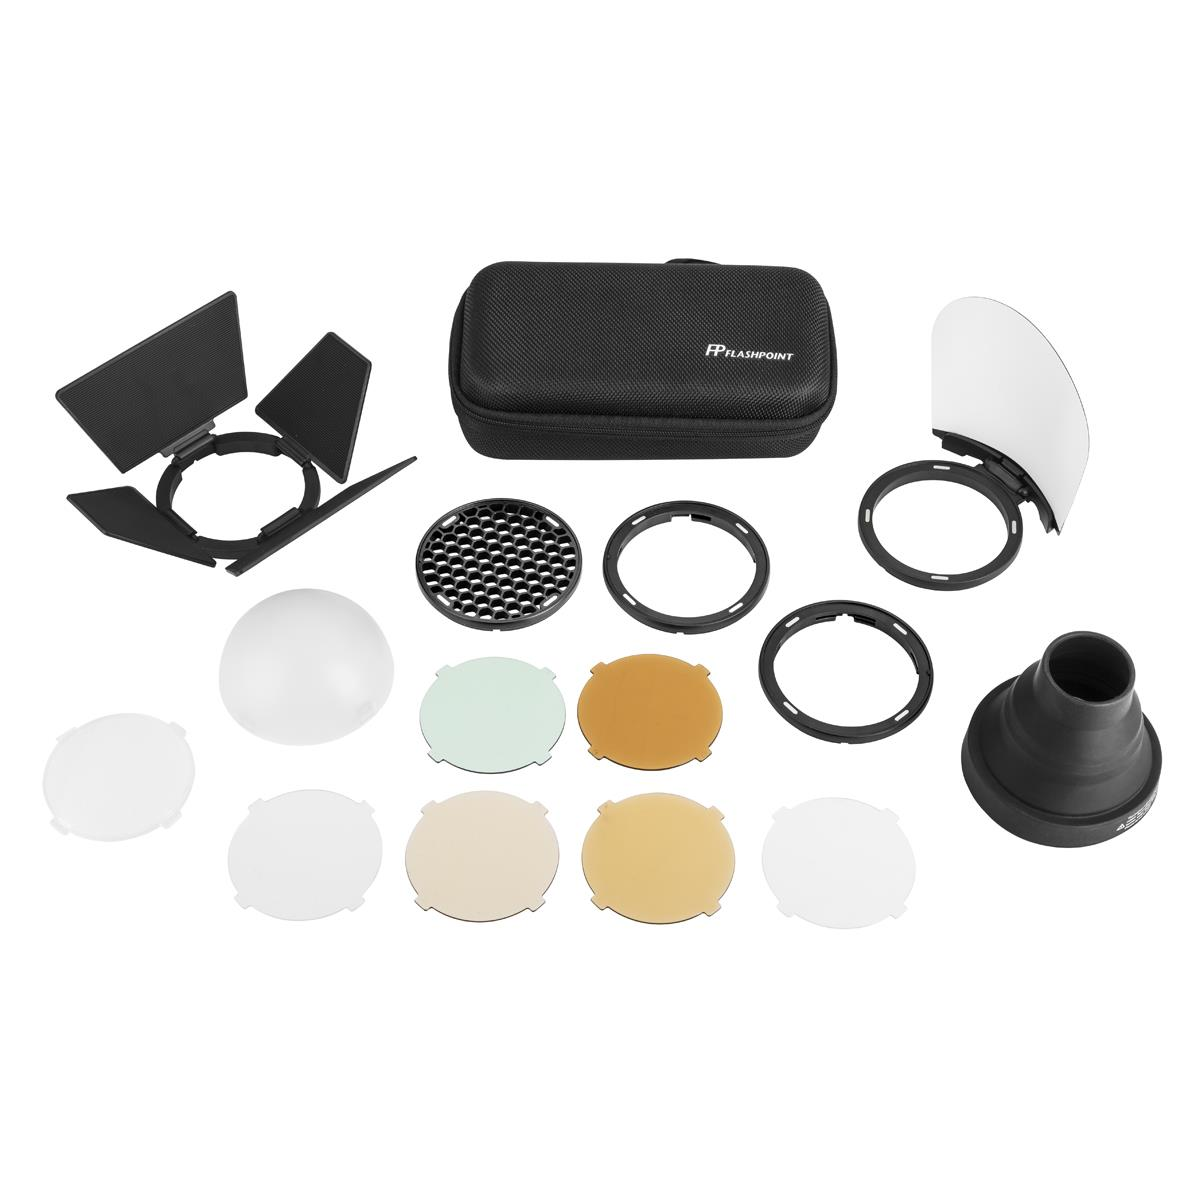 Flashpoint S-R1 Round Head Magnetic Modifier Adapter With AK-R1 Accessory Kit